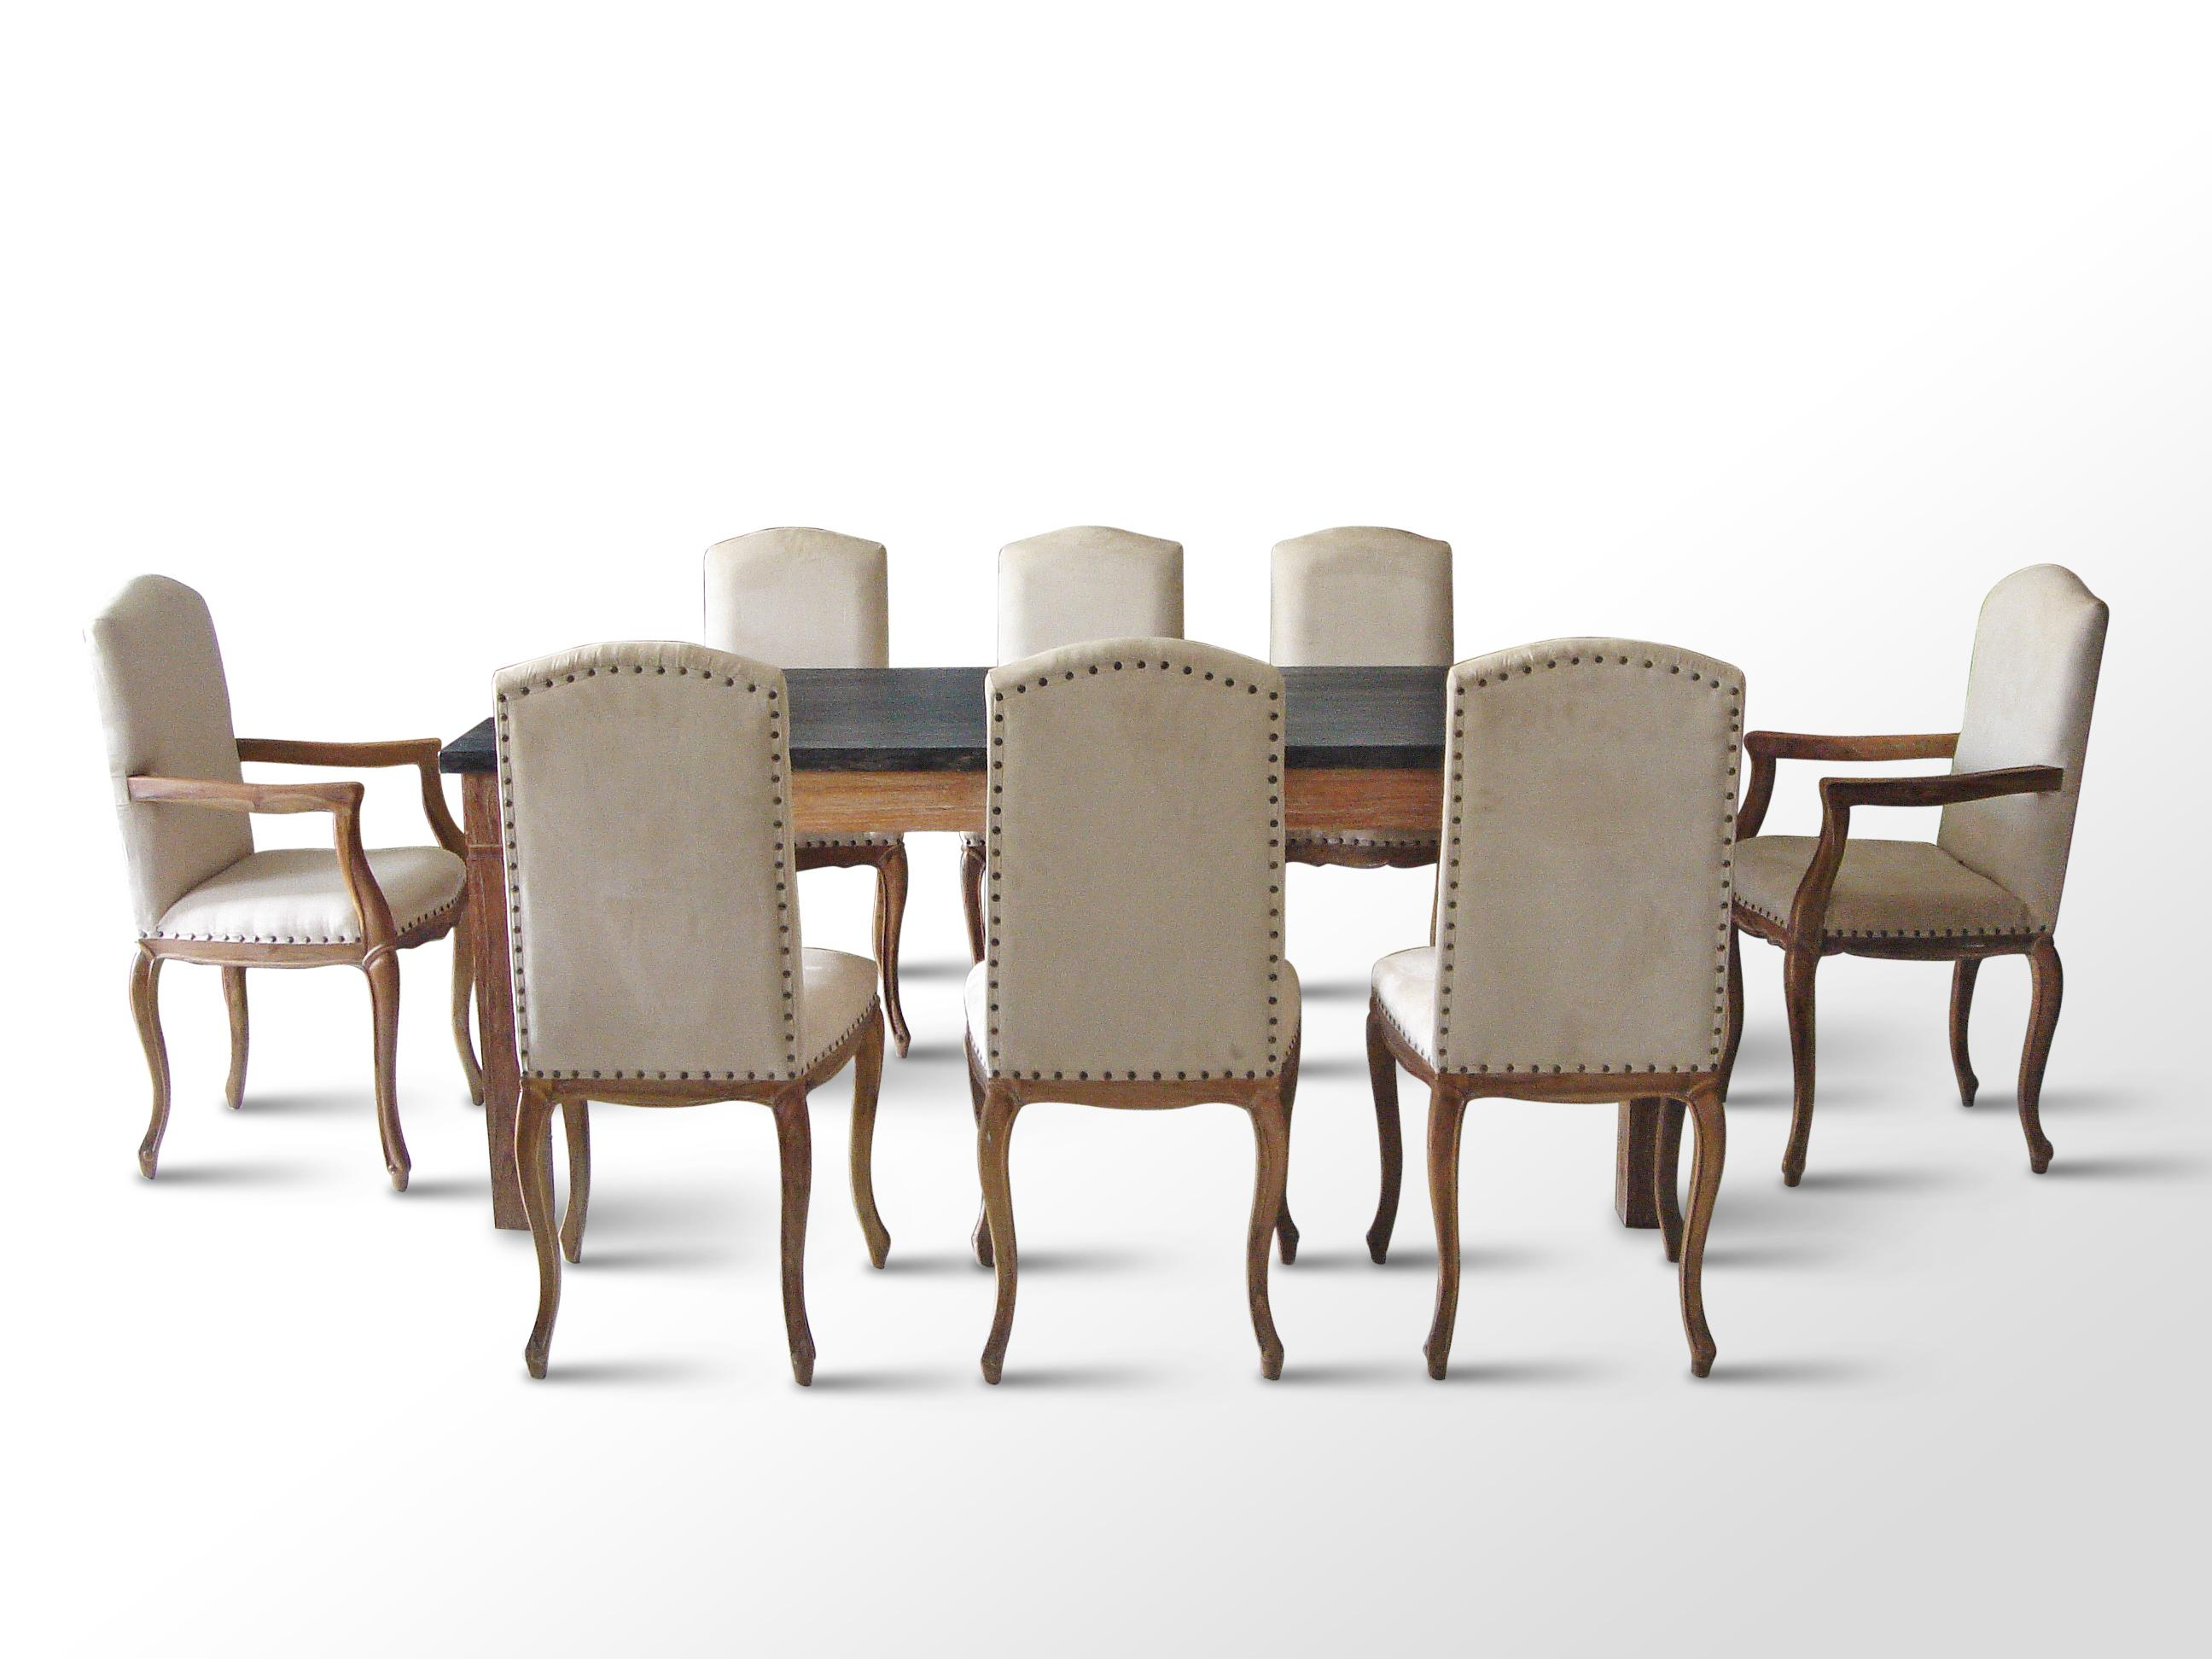 Ensemble salle manger 6 chaises for Ensemble table et chaise interieur